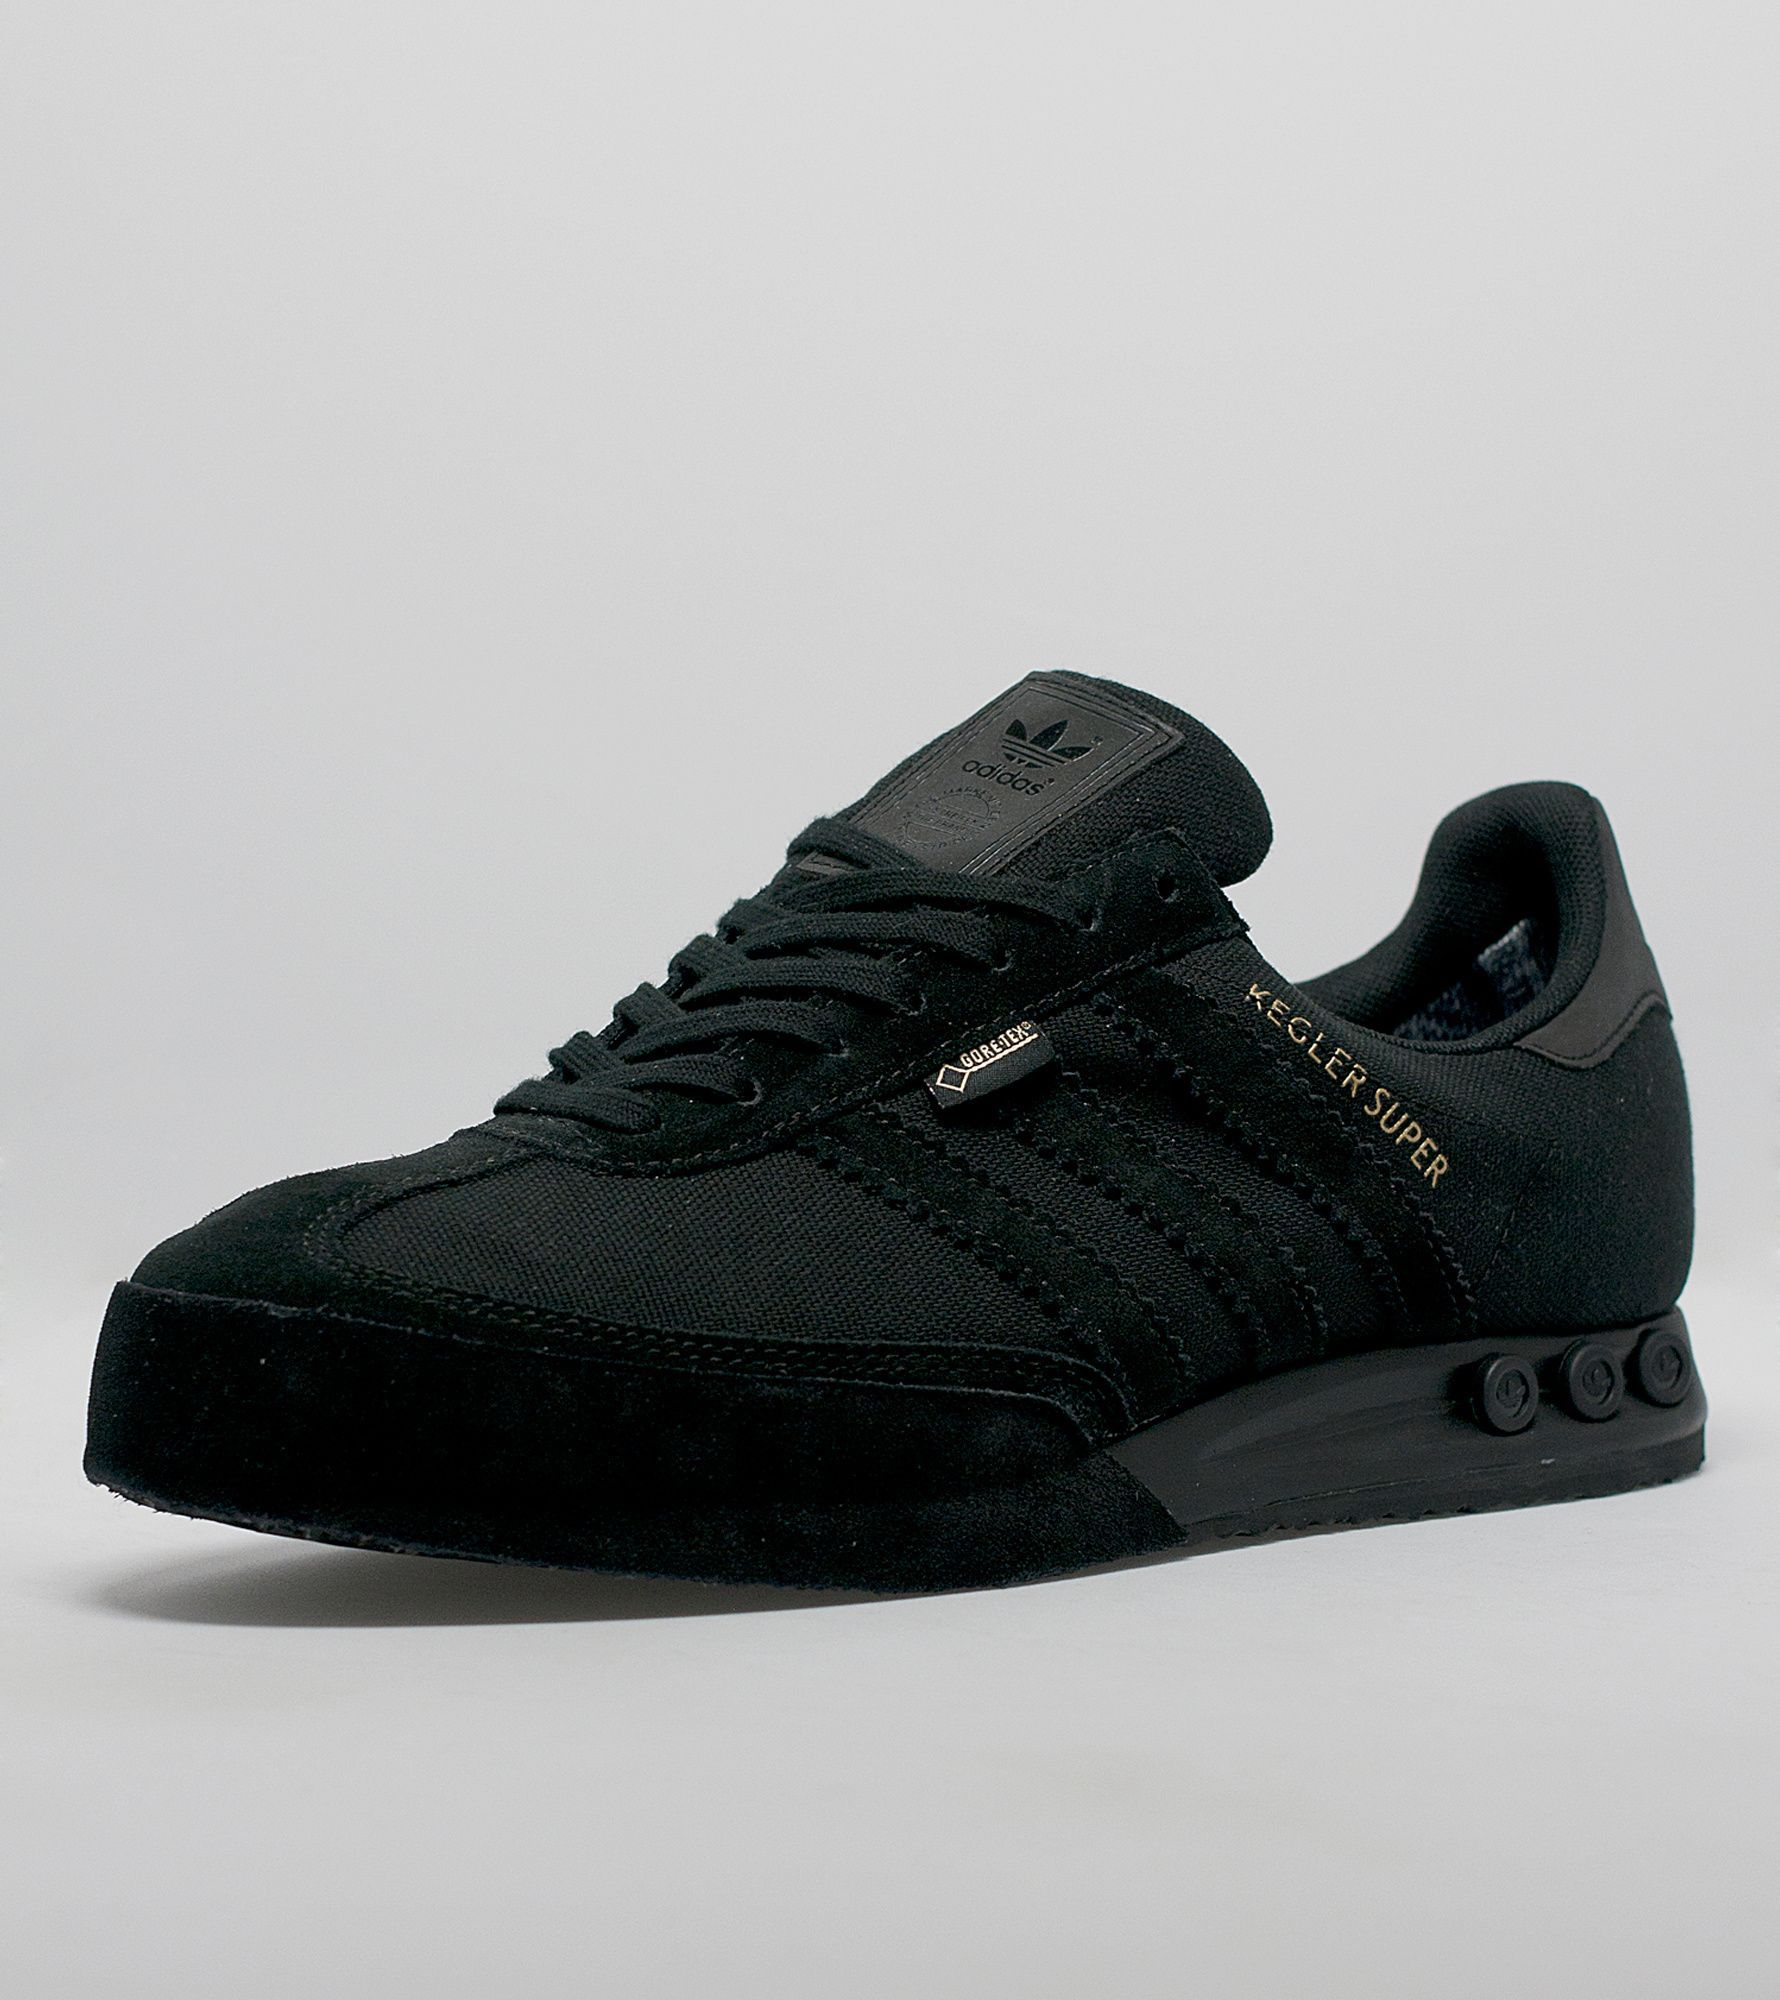 newest d9a84 413e2 adidas Originals Kegler Super Gore-Tex - size  Exclusive - find out more on  our site. Find the freshest in trainers and clothing online now.